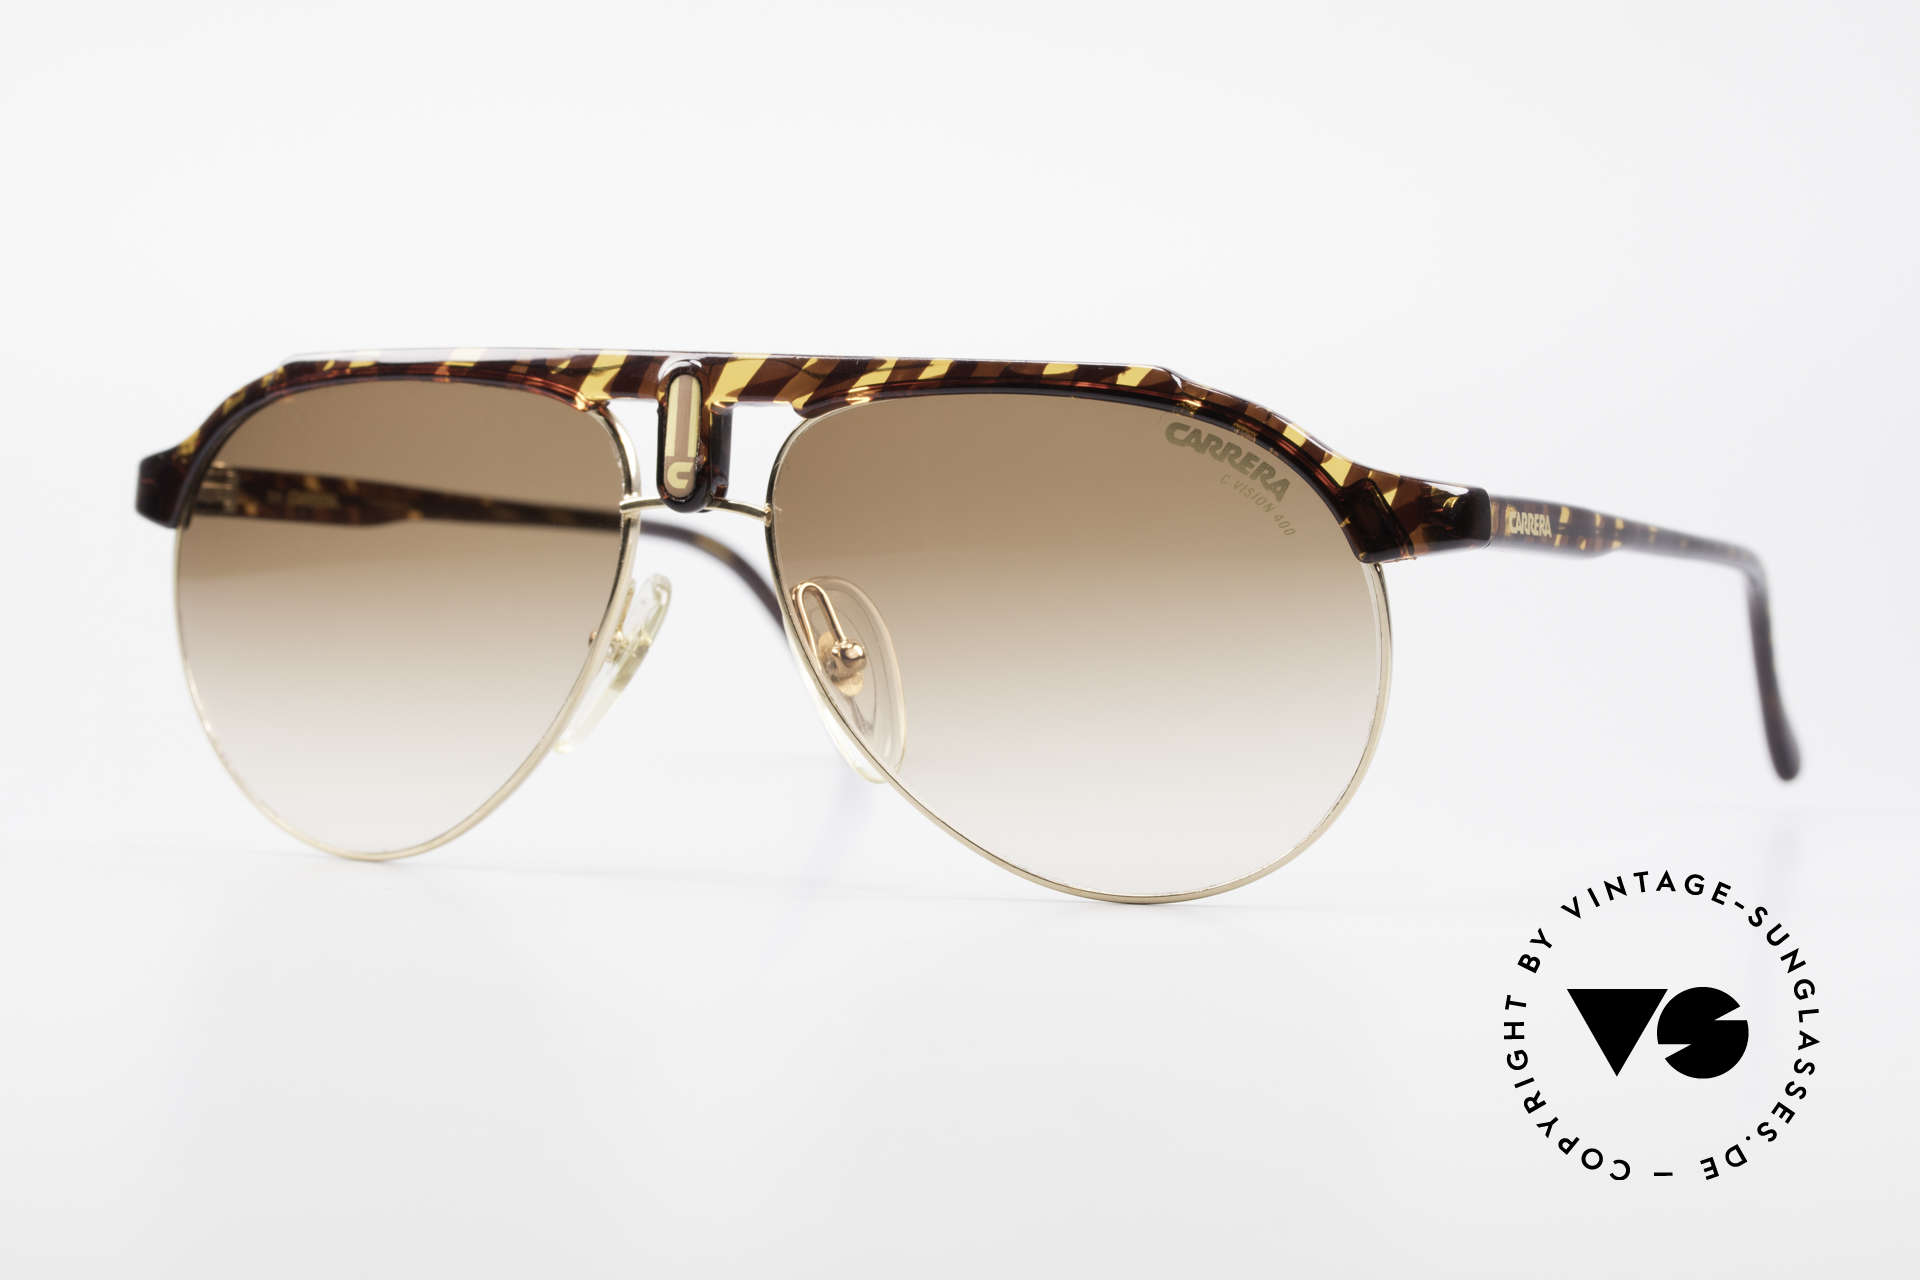 Carrera 5478 Rare Vintage Shades Aviator, brilliant CARRERA design from the late 1980's, Made for Men and Women